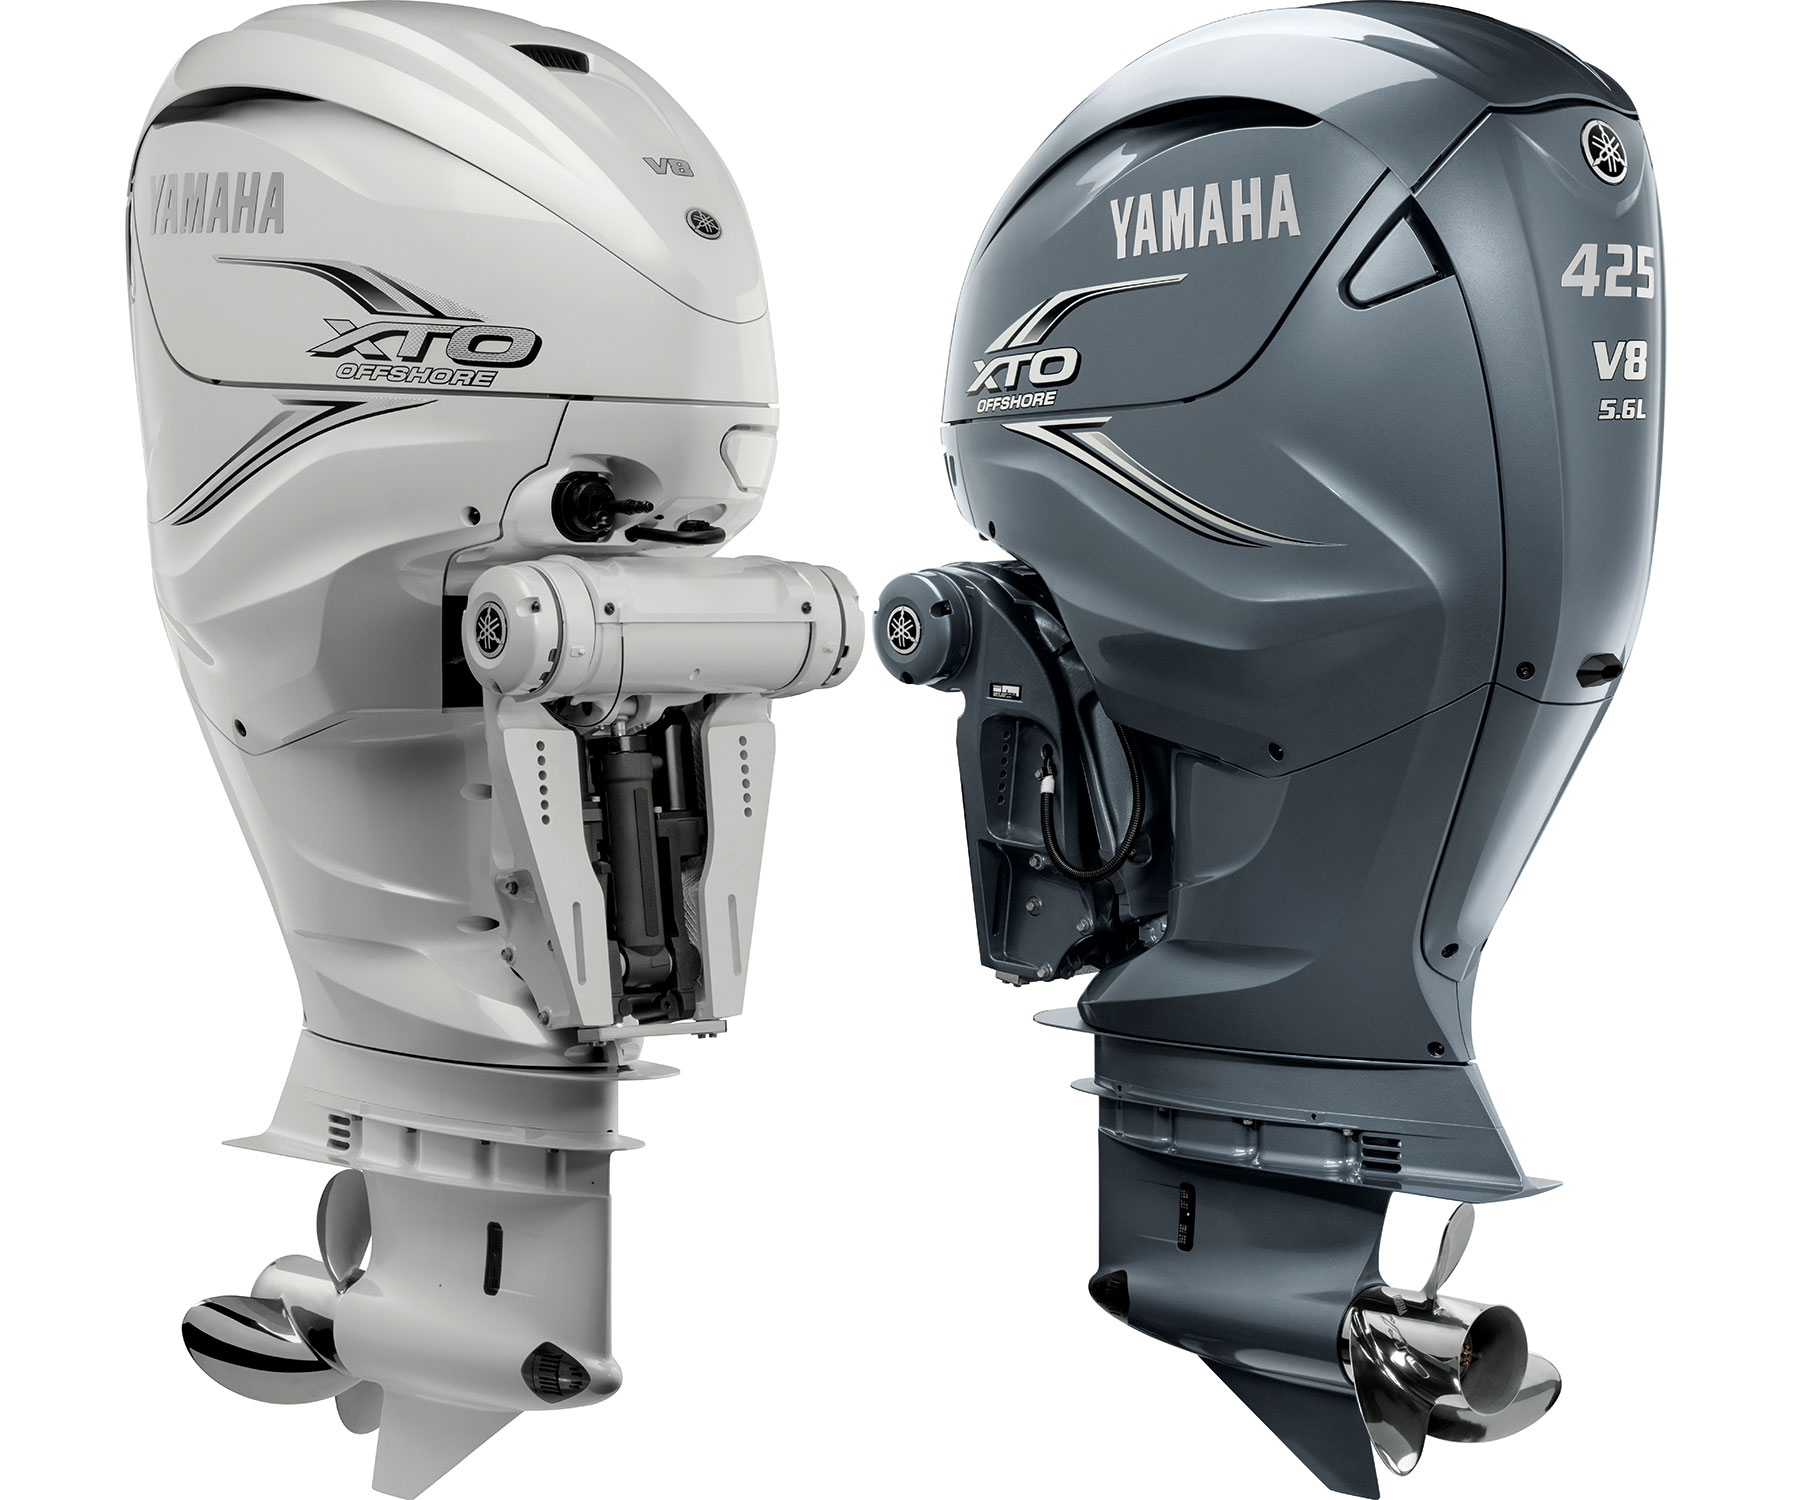 Outboard Motors, Boat Engines, Engine Reviews | Sport Fishing Magazine